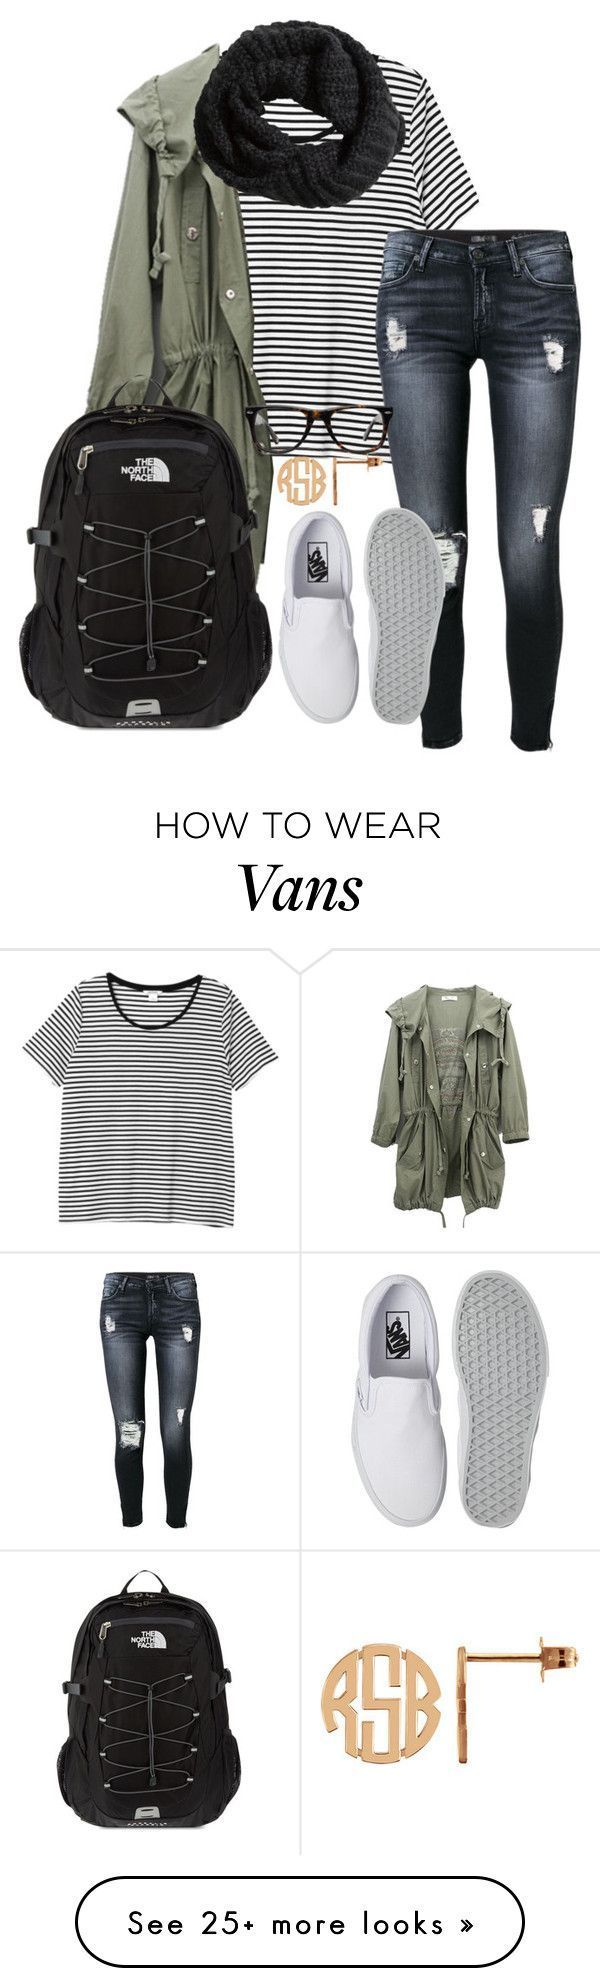 Monki, 7 For All Mankind, Vans, The North Face, Muse, H&M, women's clothing, women, female and woman